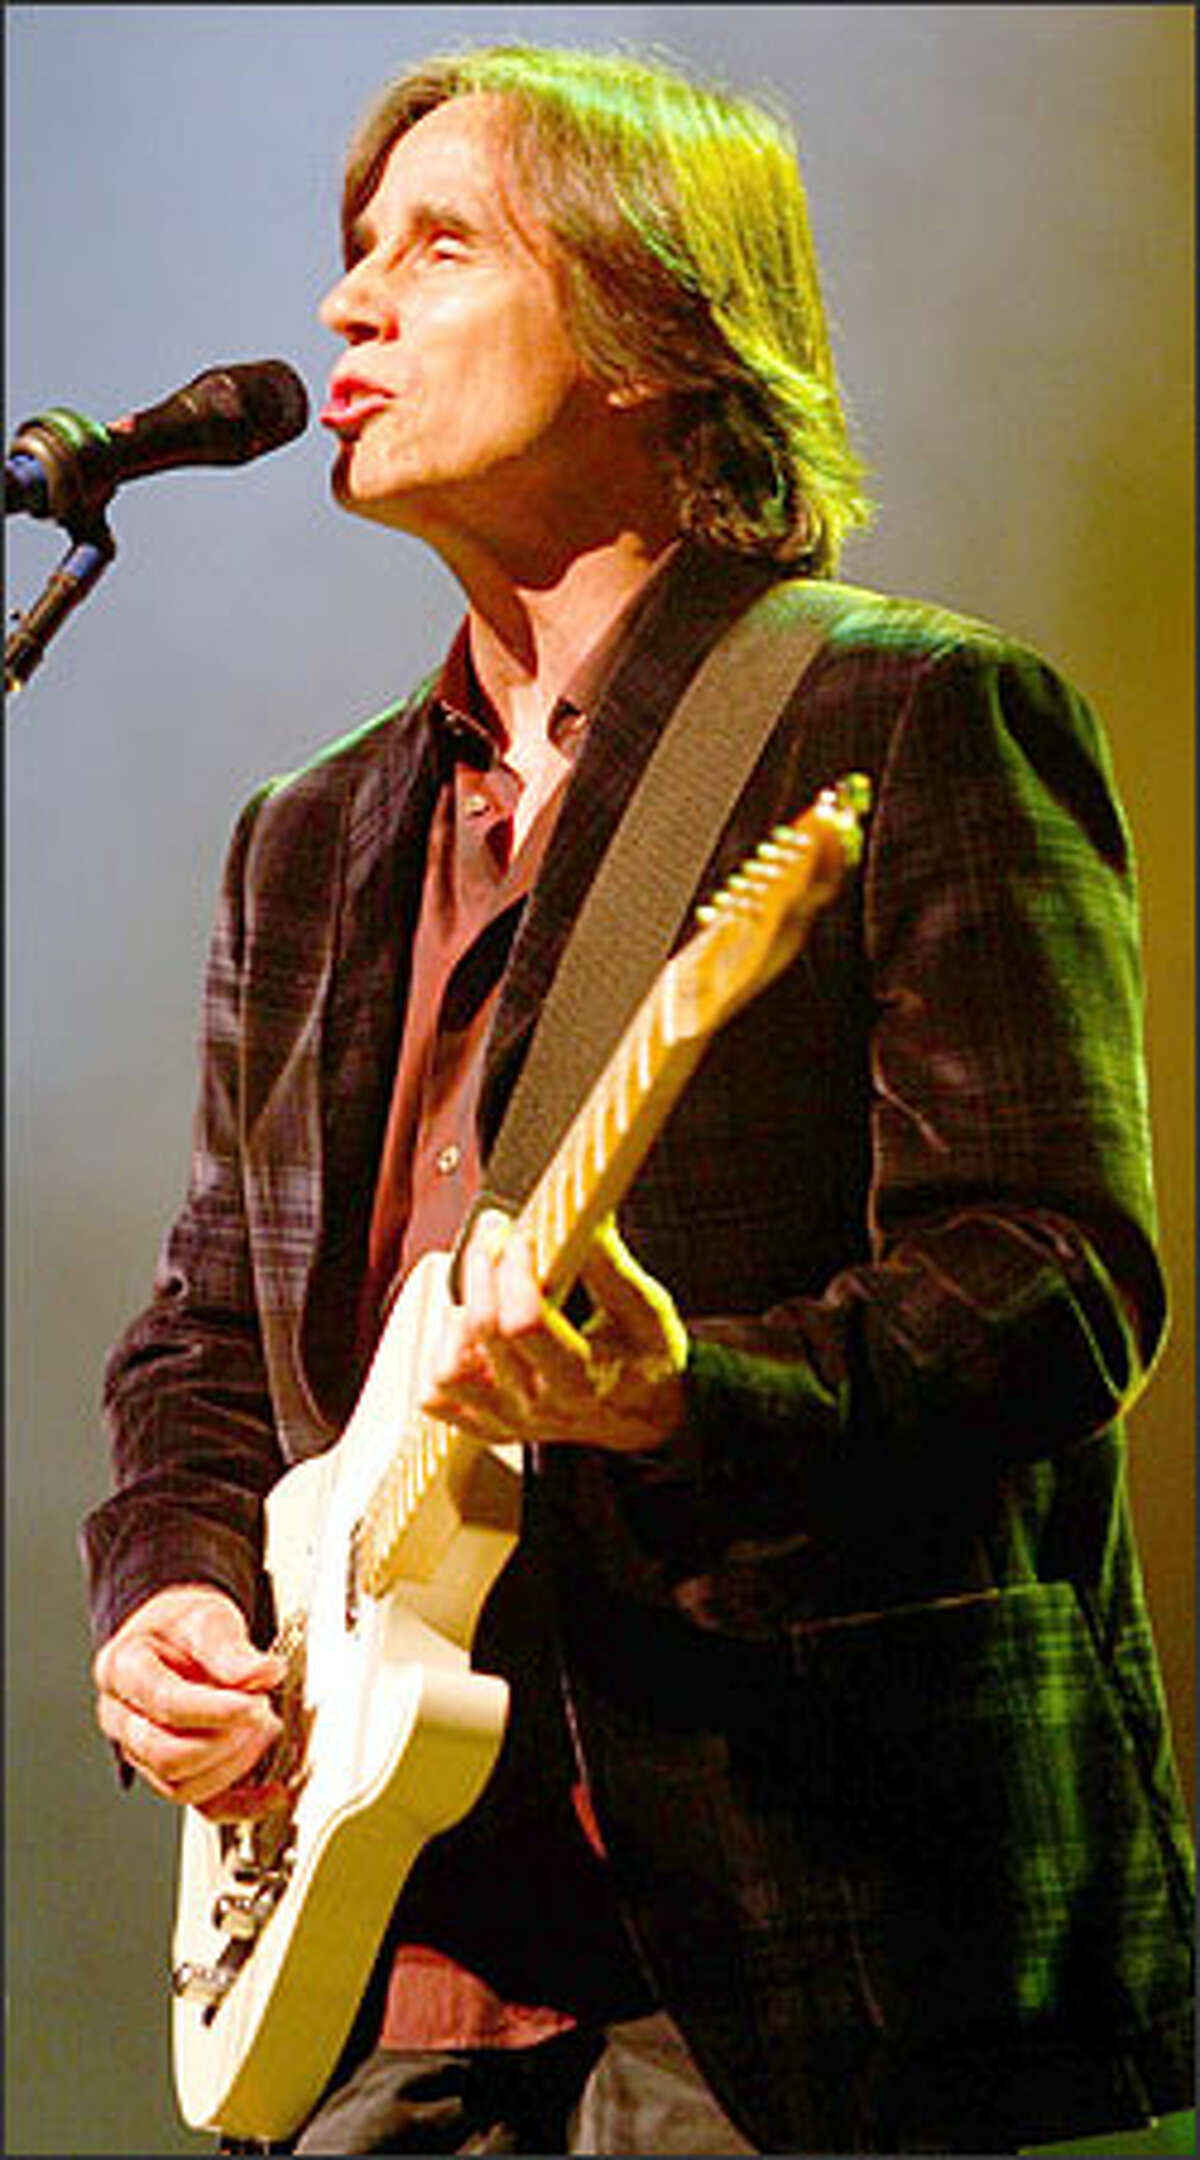 Jackson Brown performs at the Tacoma Dome as the opening band for Tom Petty and the Heartbreakers.